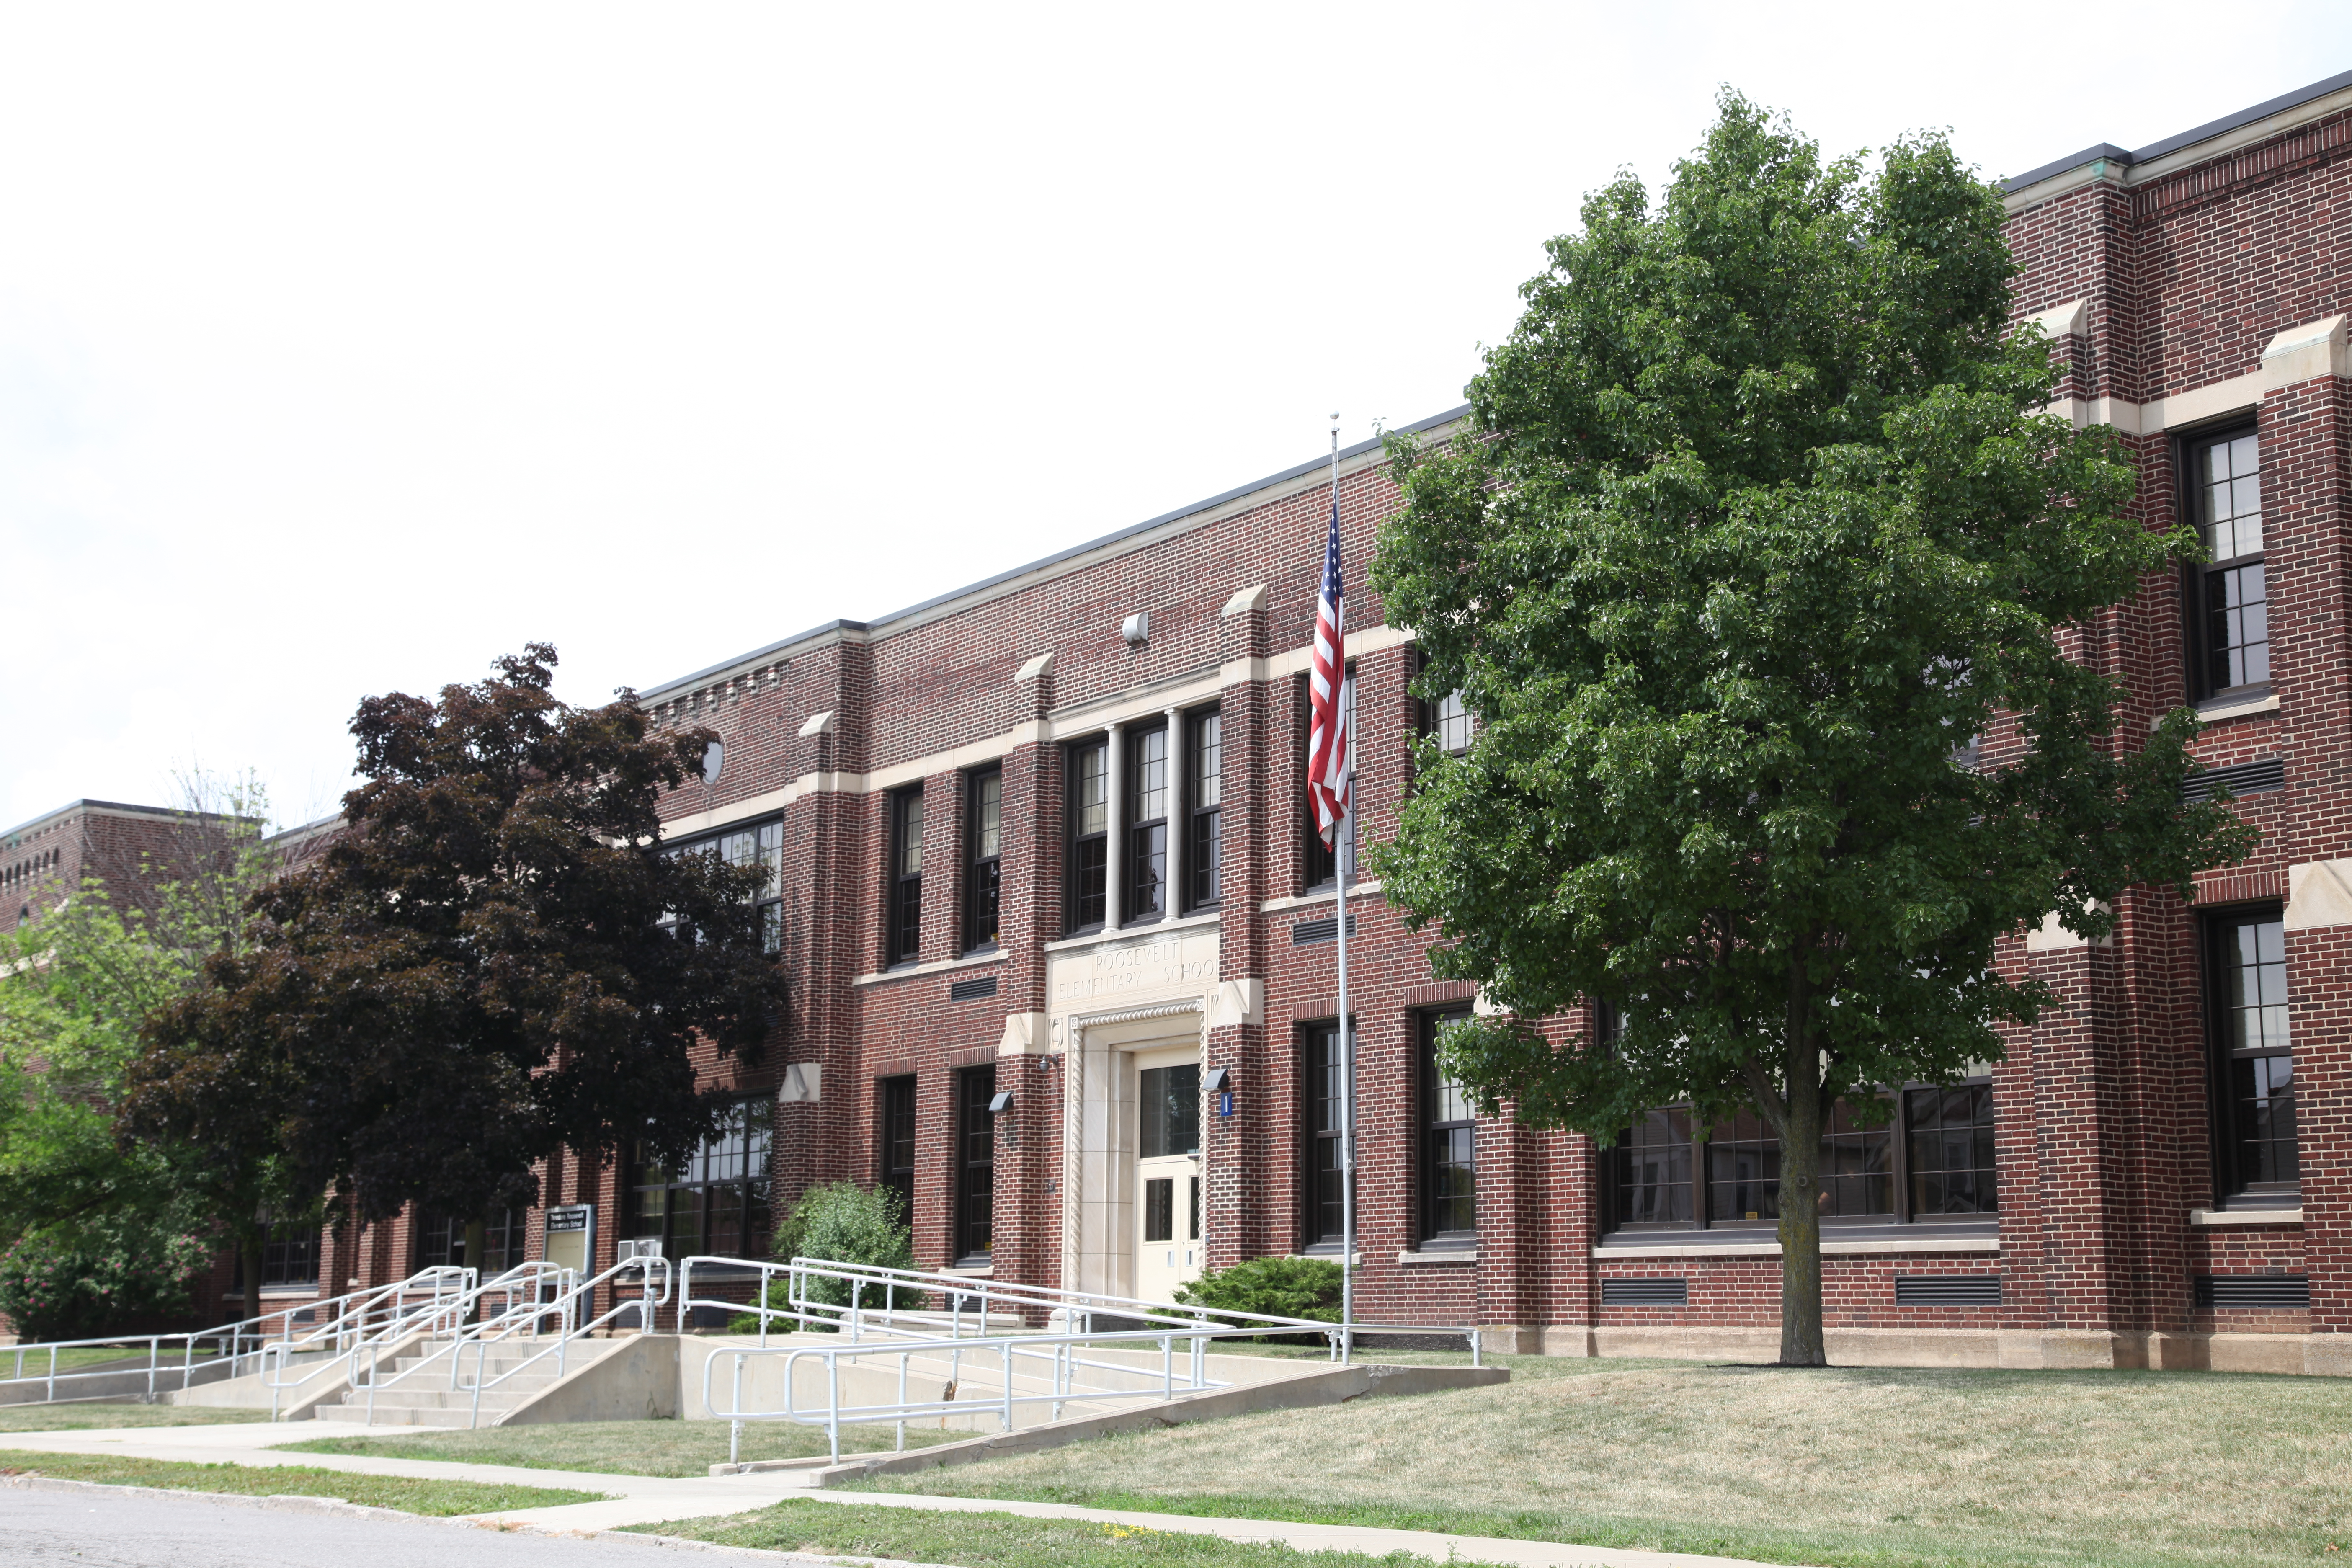 A photo of the Roosevelt campus school building